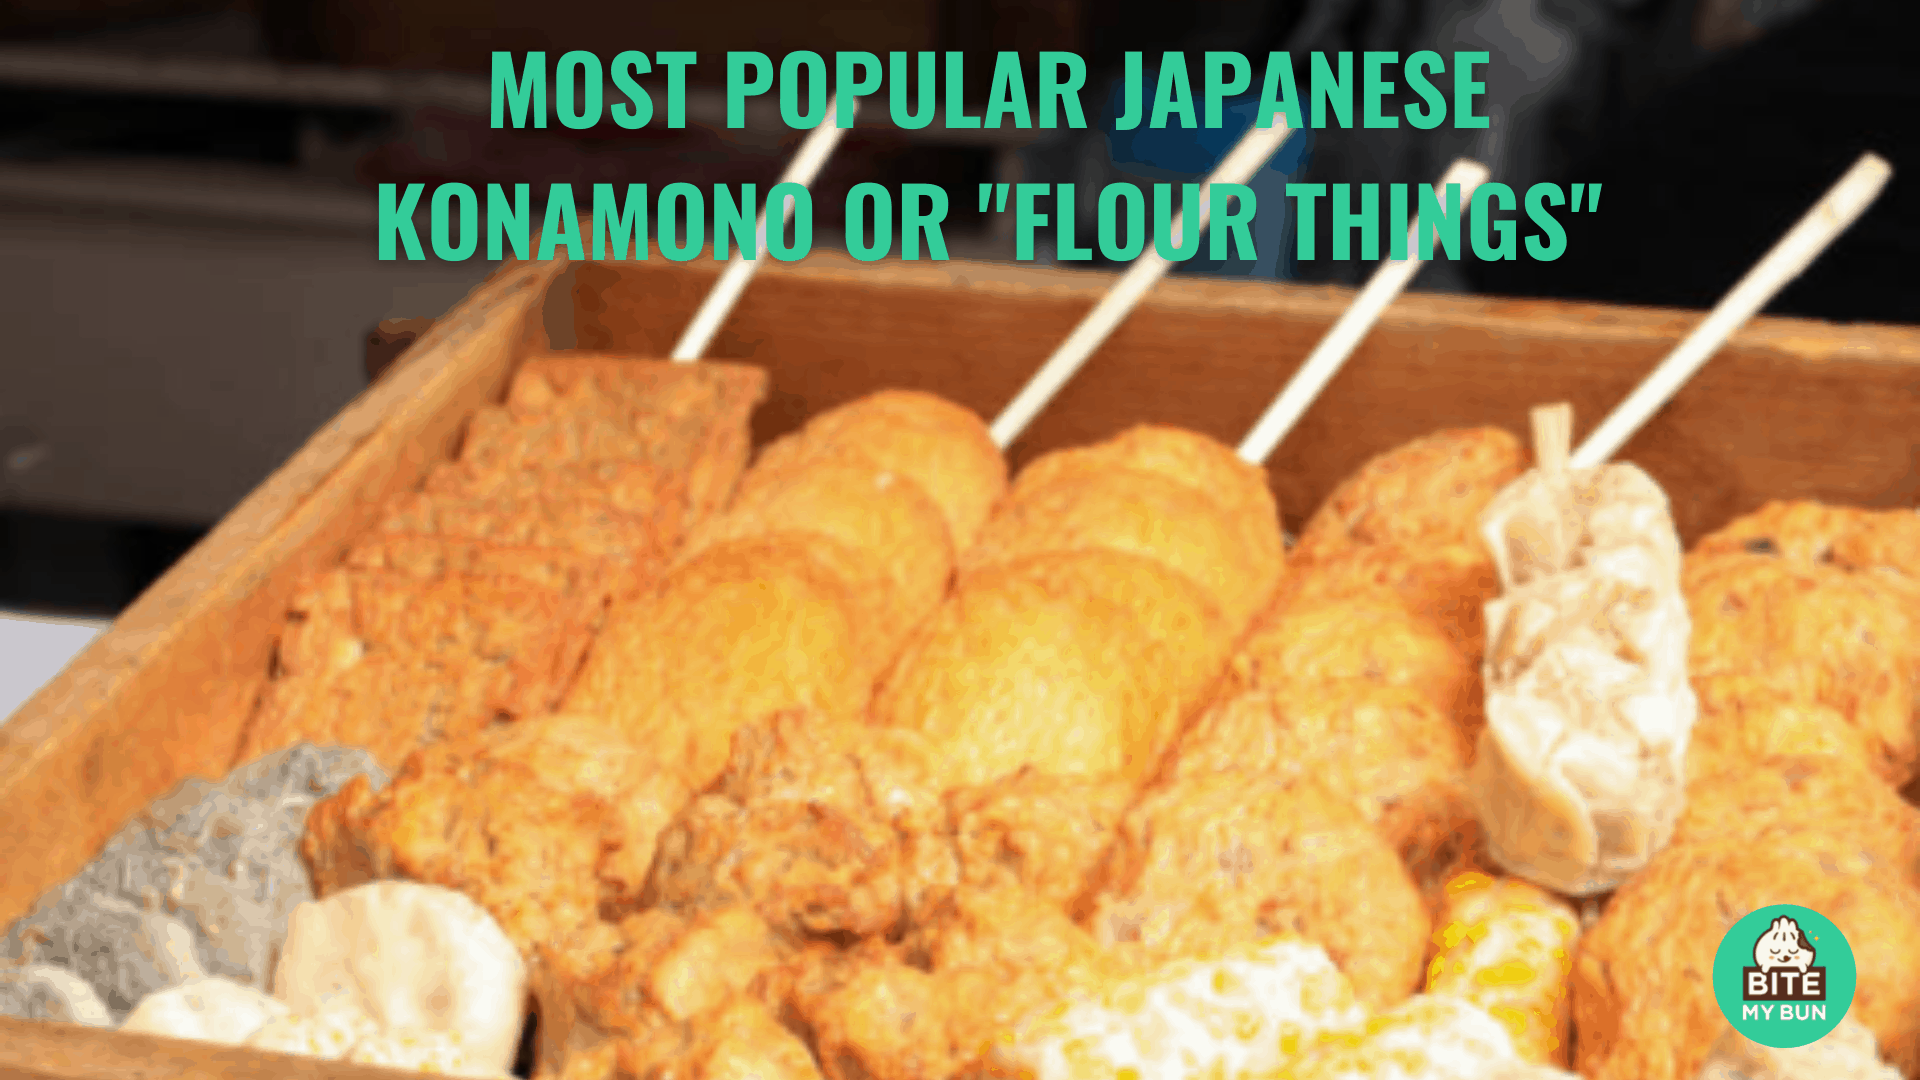 """Most popular Japanese konamono or """"flour things"""" 